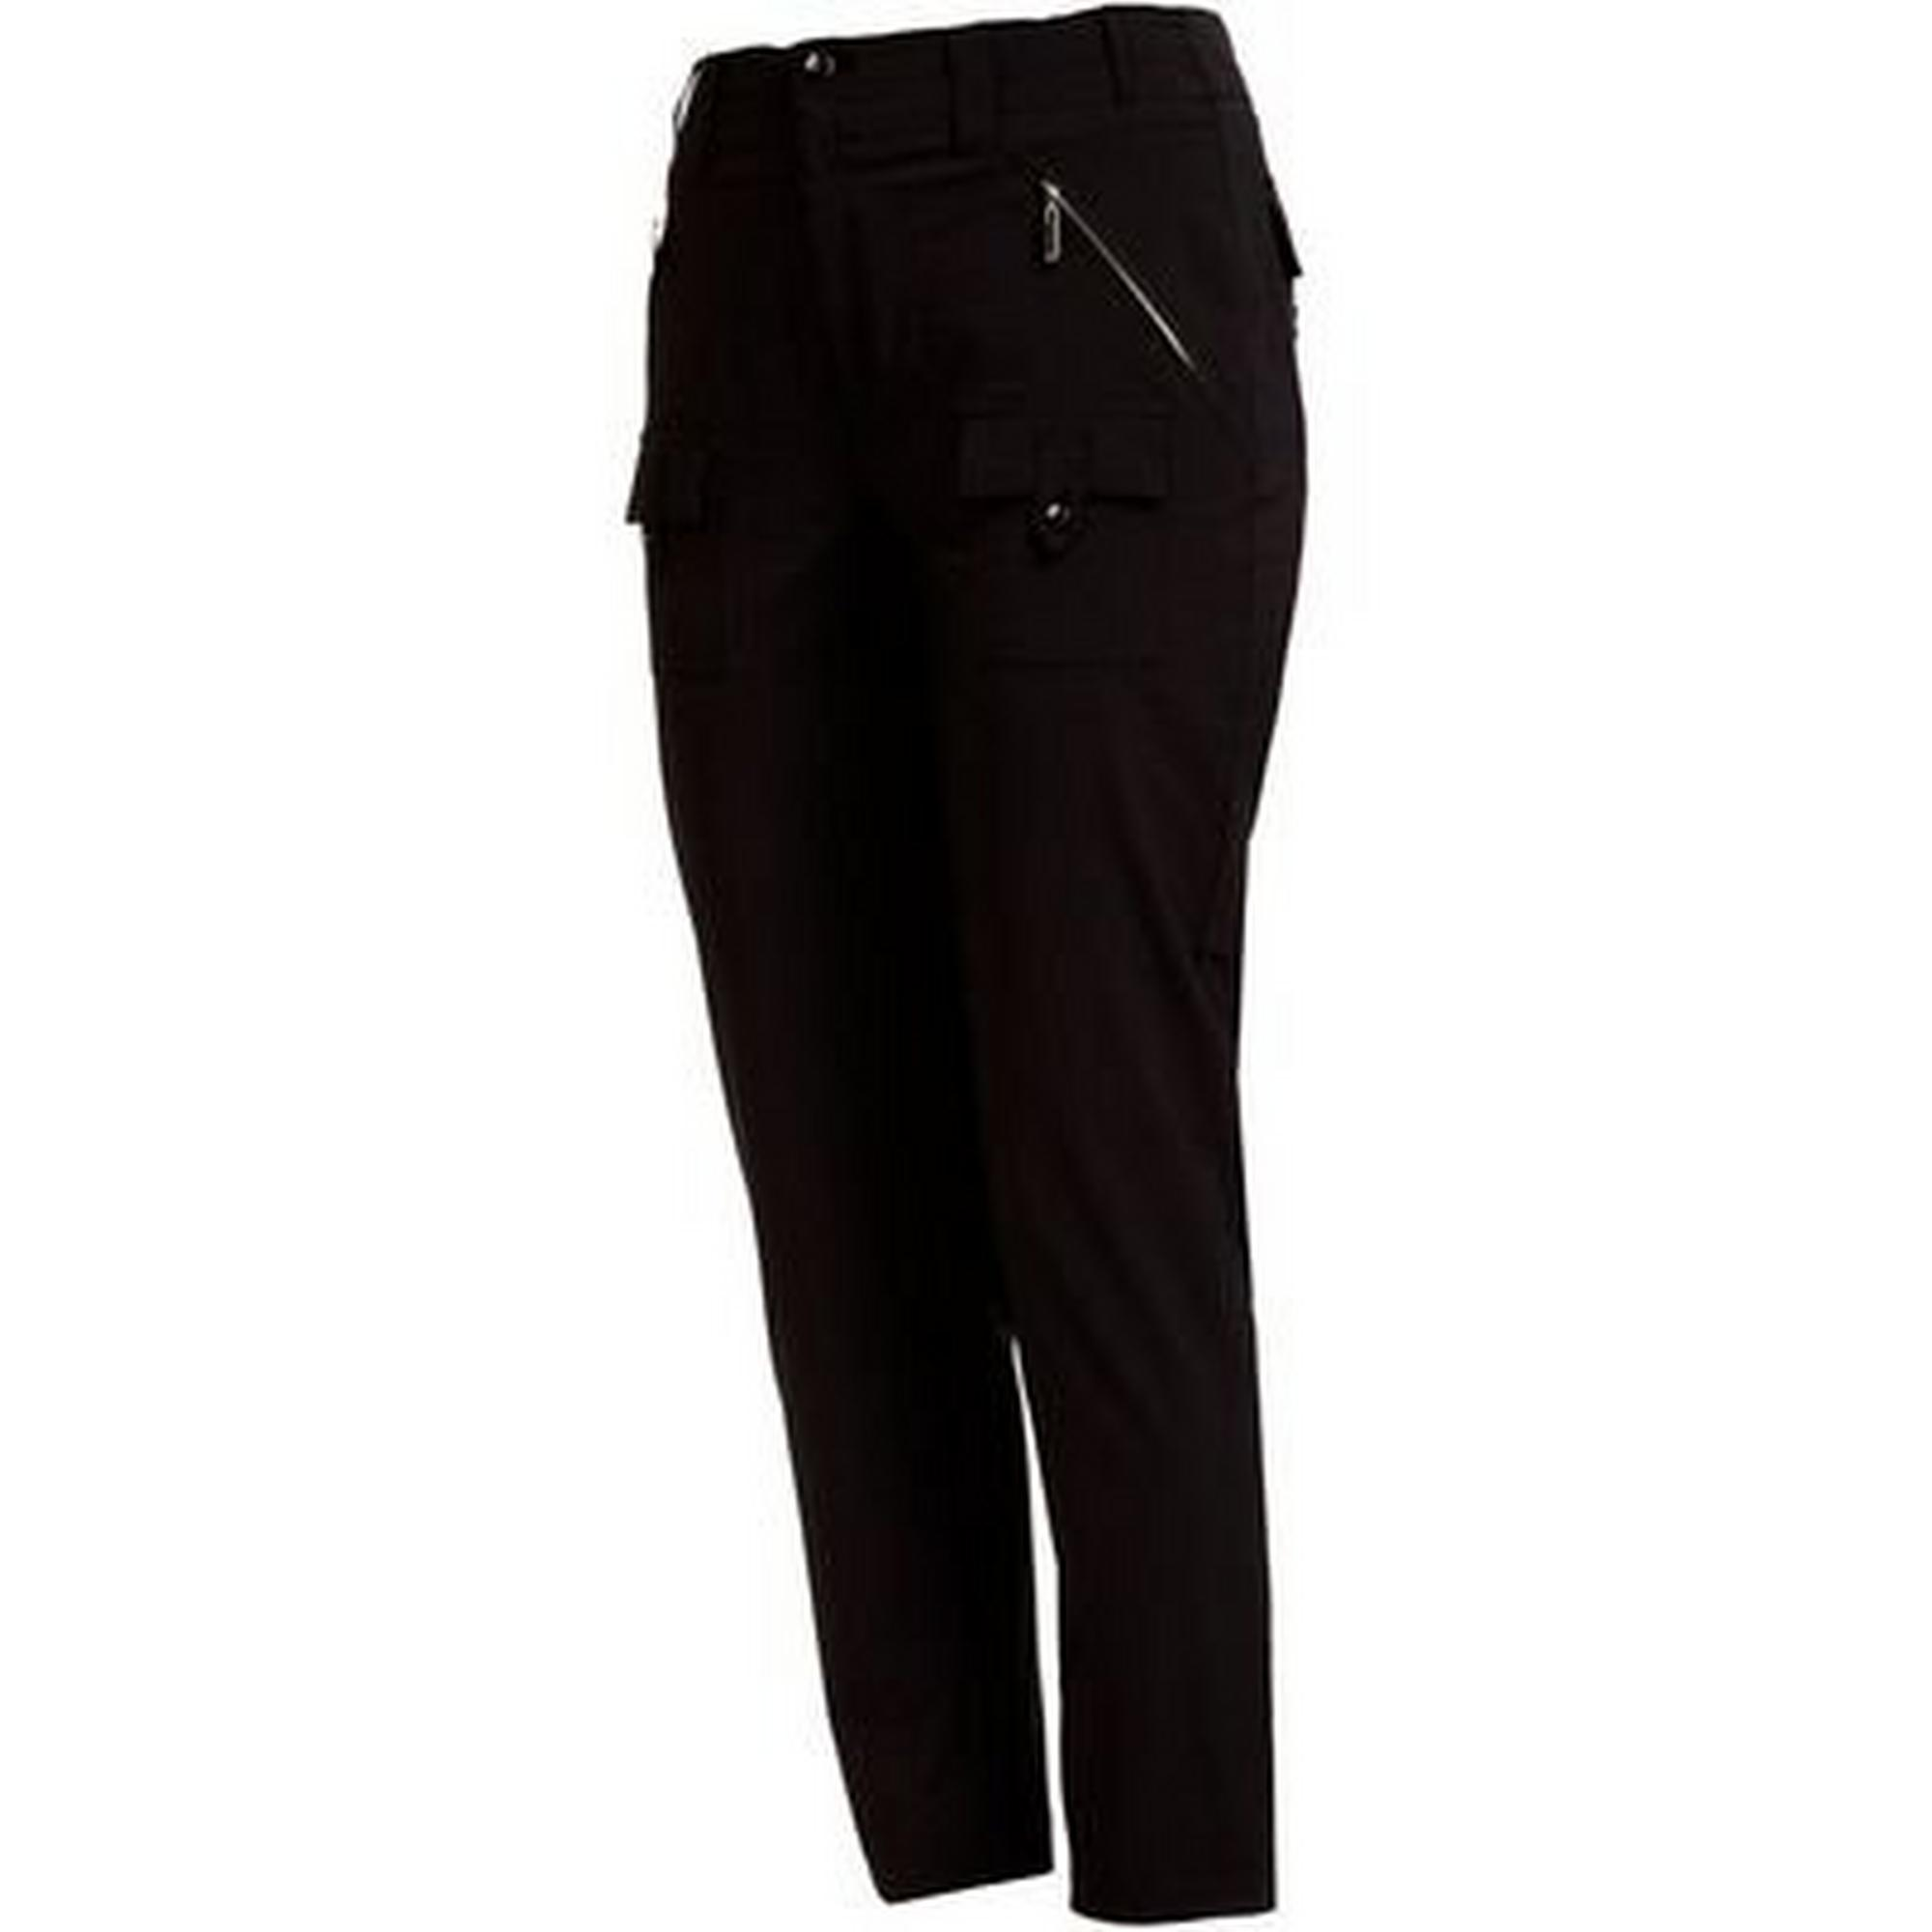 Women's Airwear Ankle Pant 38.5 Inch